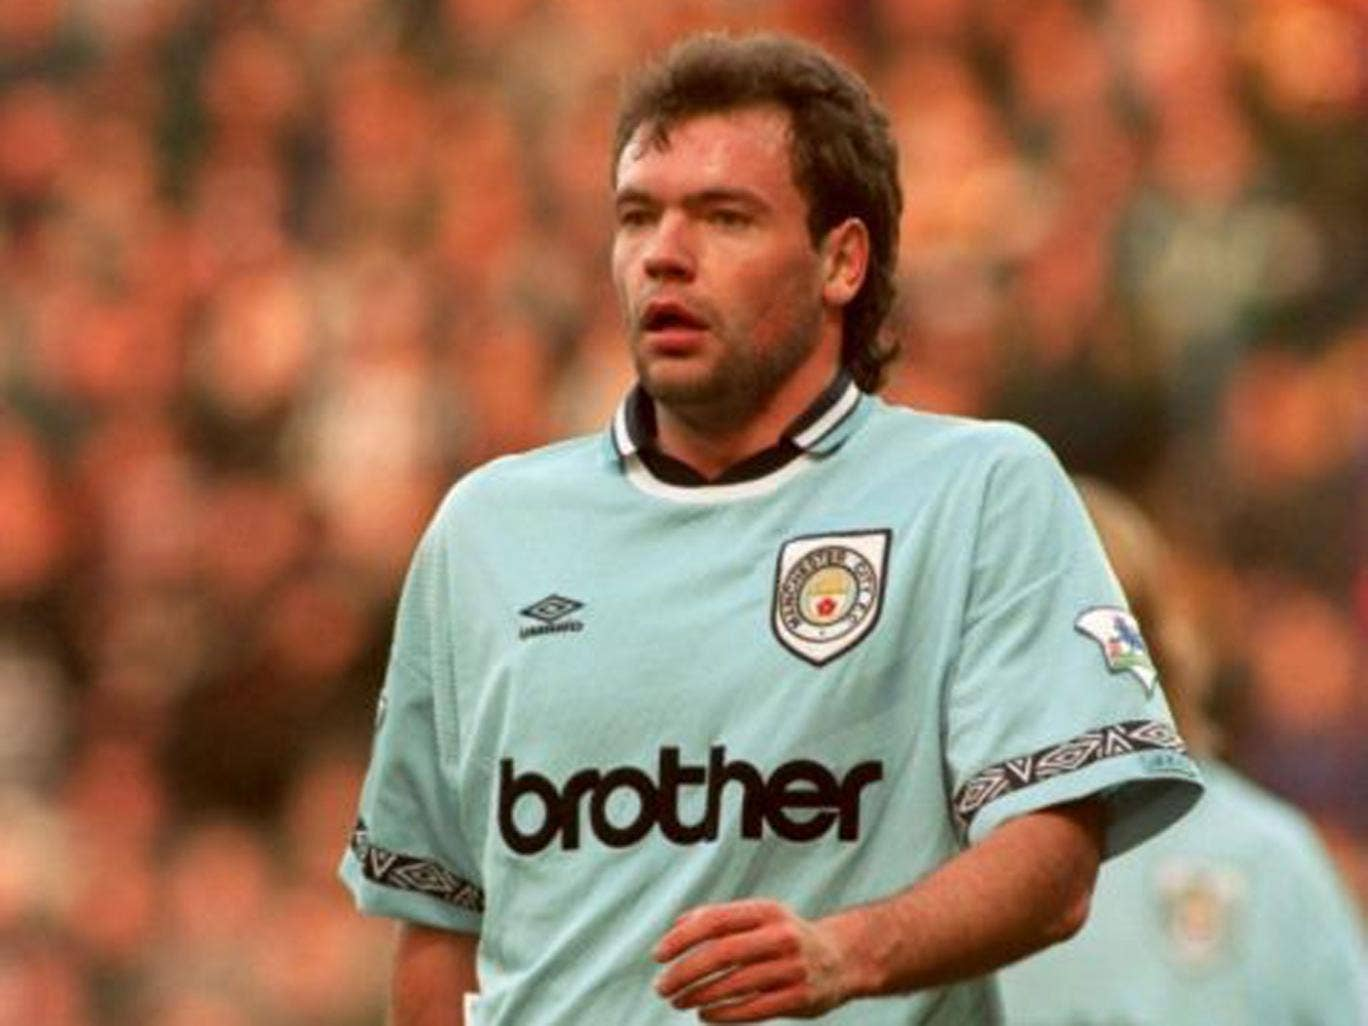 City slicker: Uwe Rösler in action for Manchester City in 1995